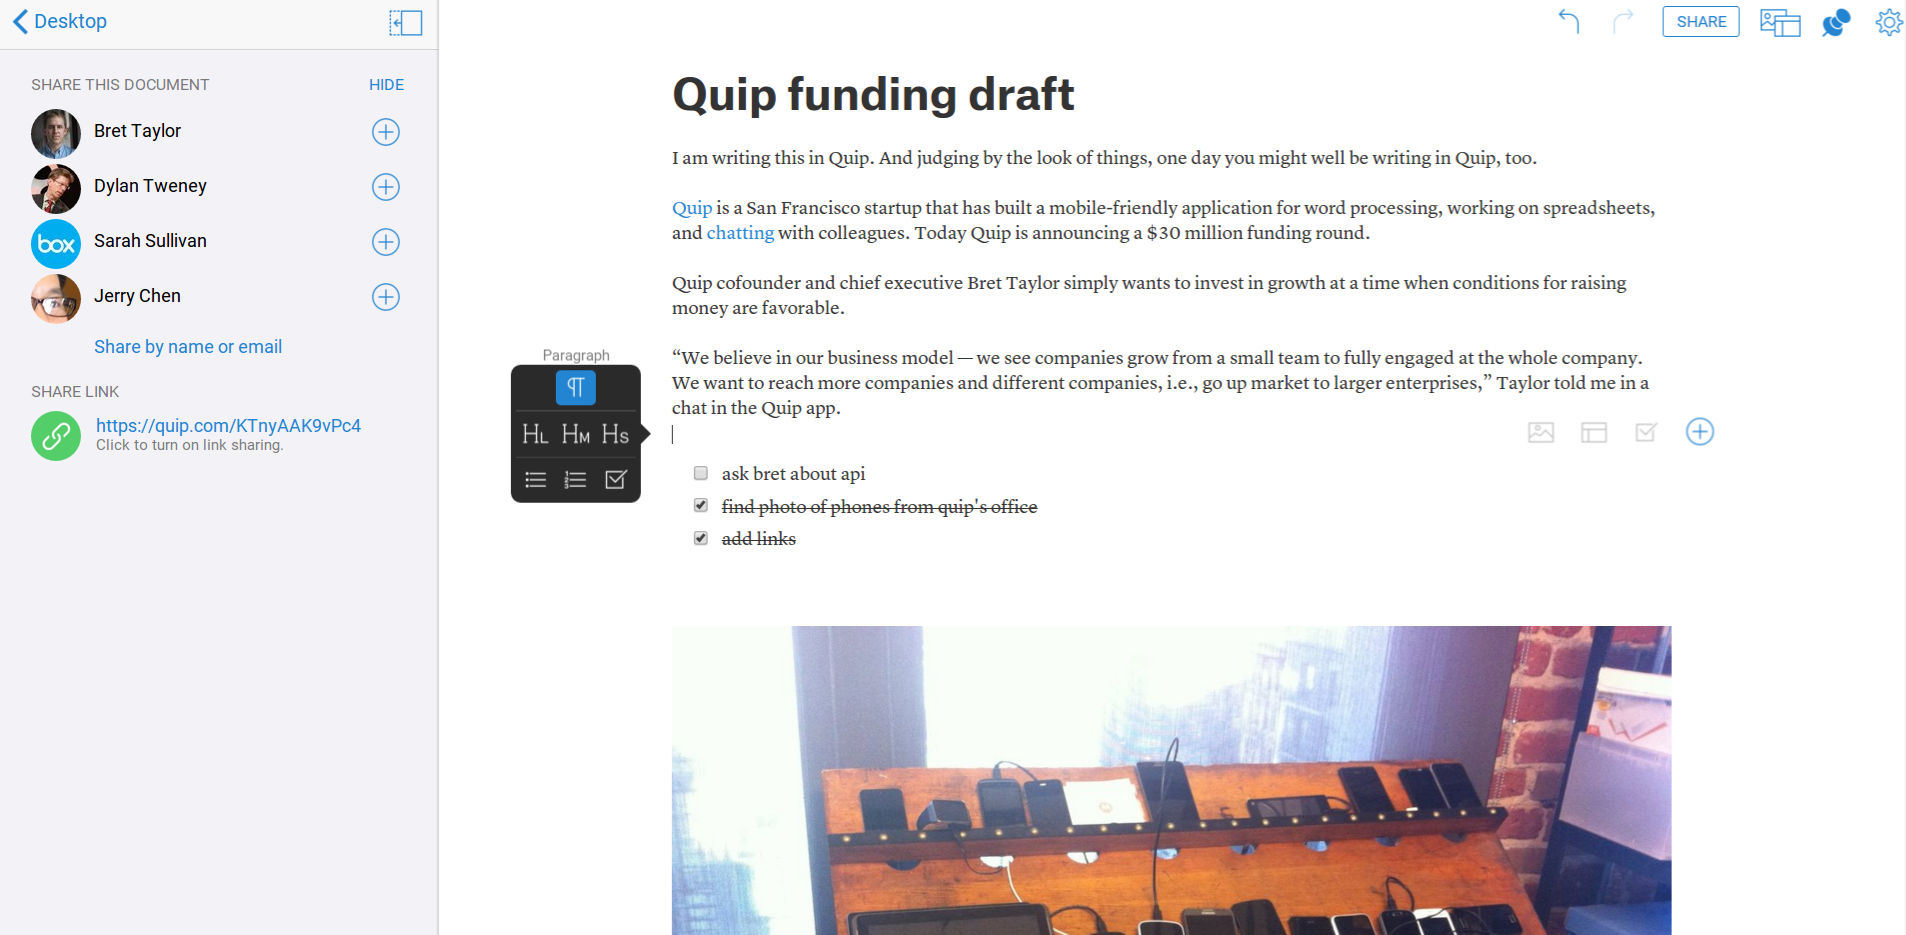 Word processing app Quip raises $30M from Greylock and Benchmark